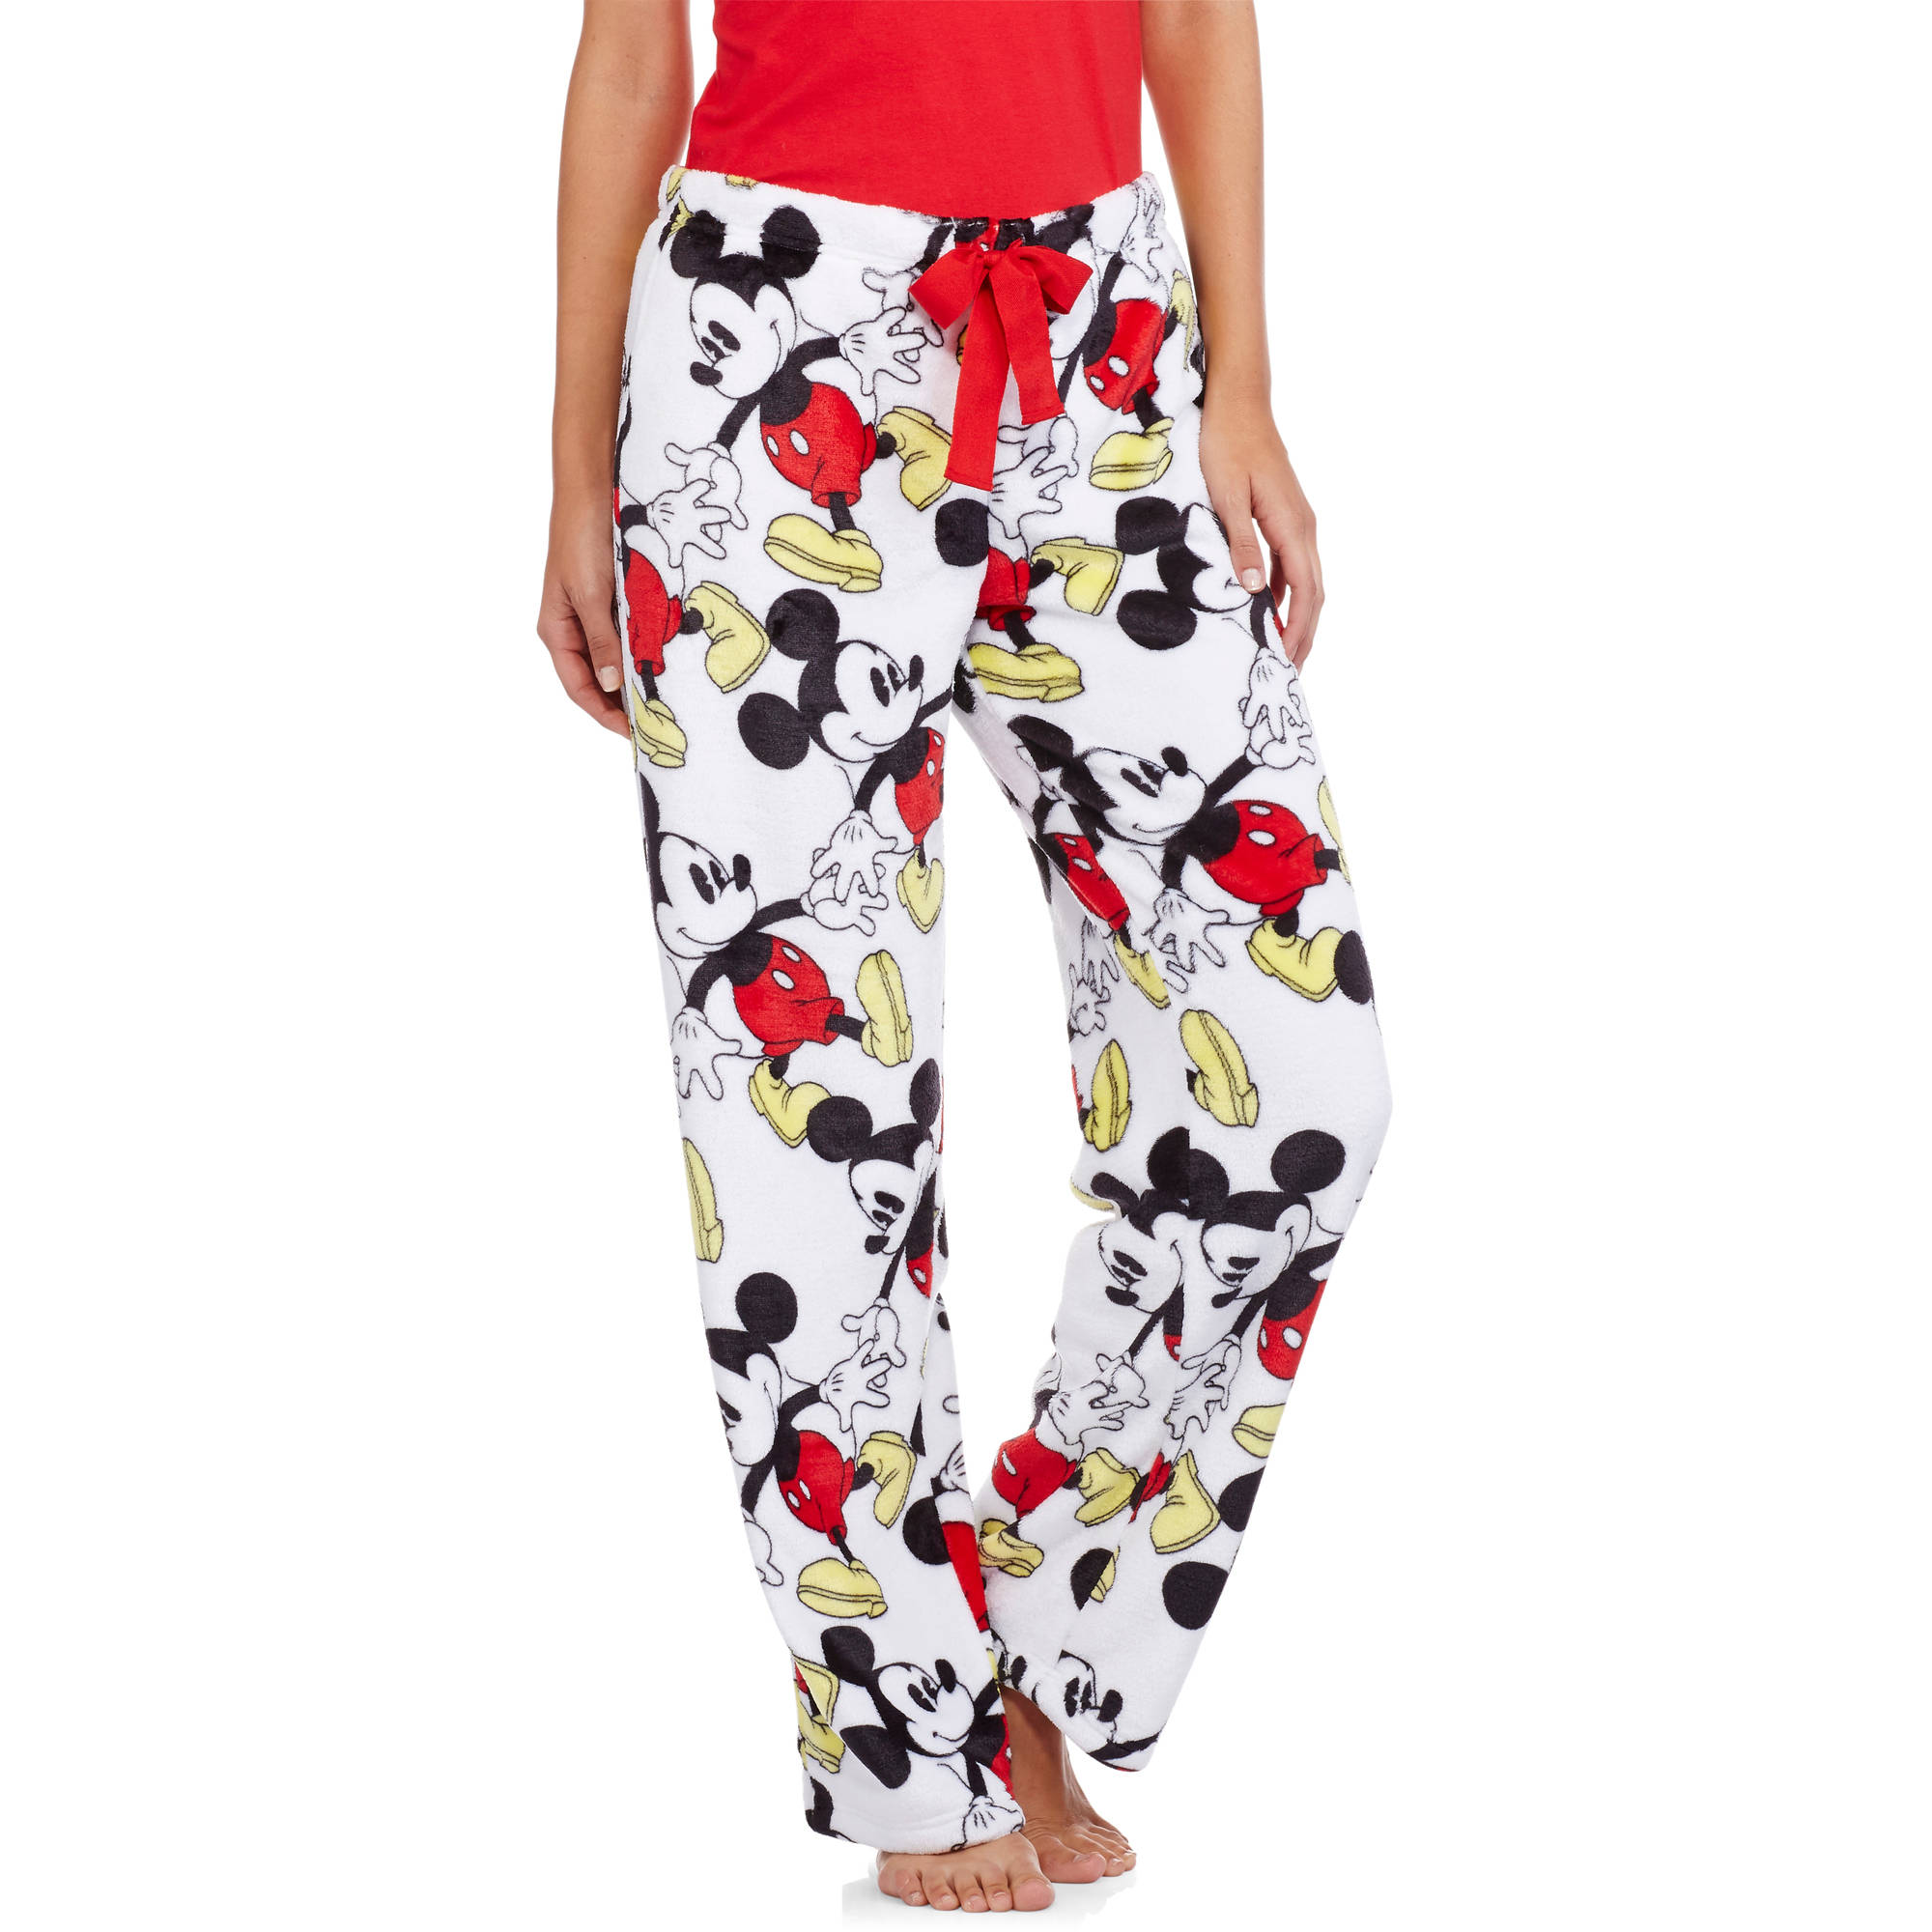 Disney Mickey Mouse Women's License Pajama Super Minky Plush Fleece Sleep Pant